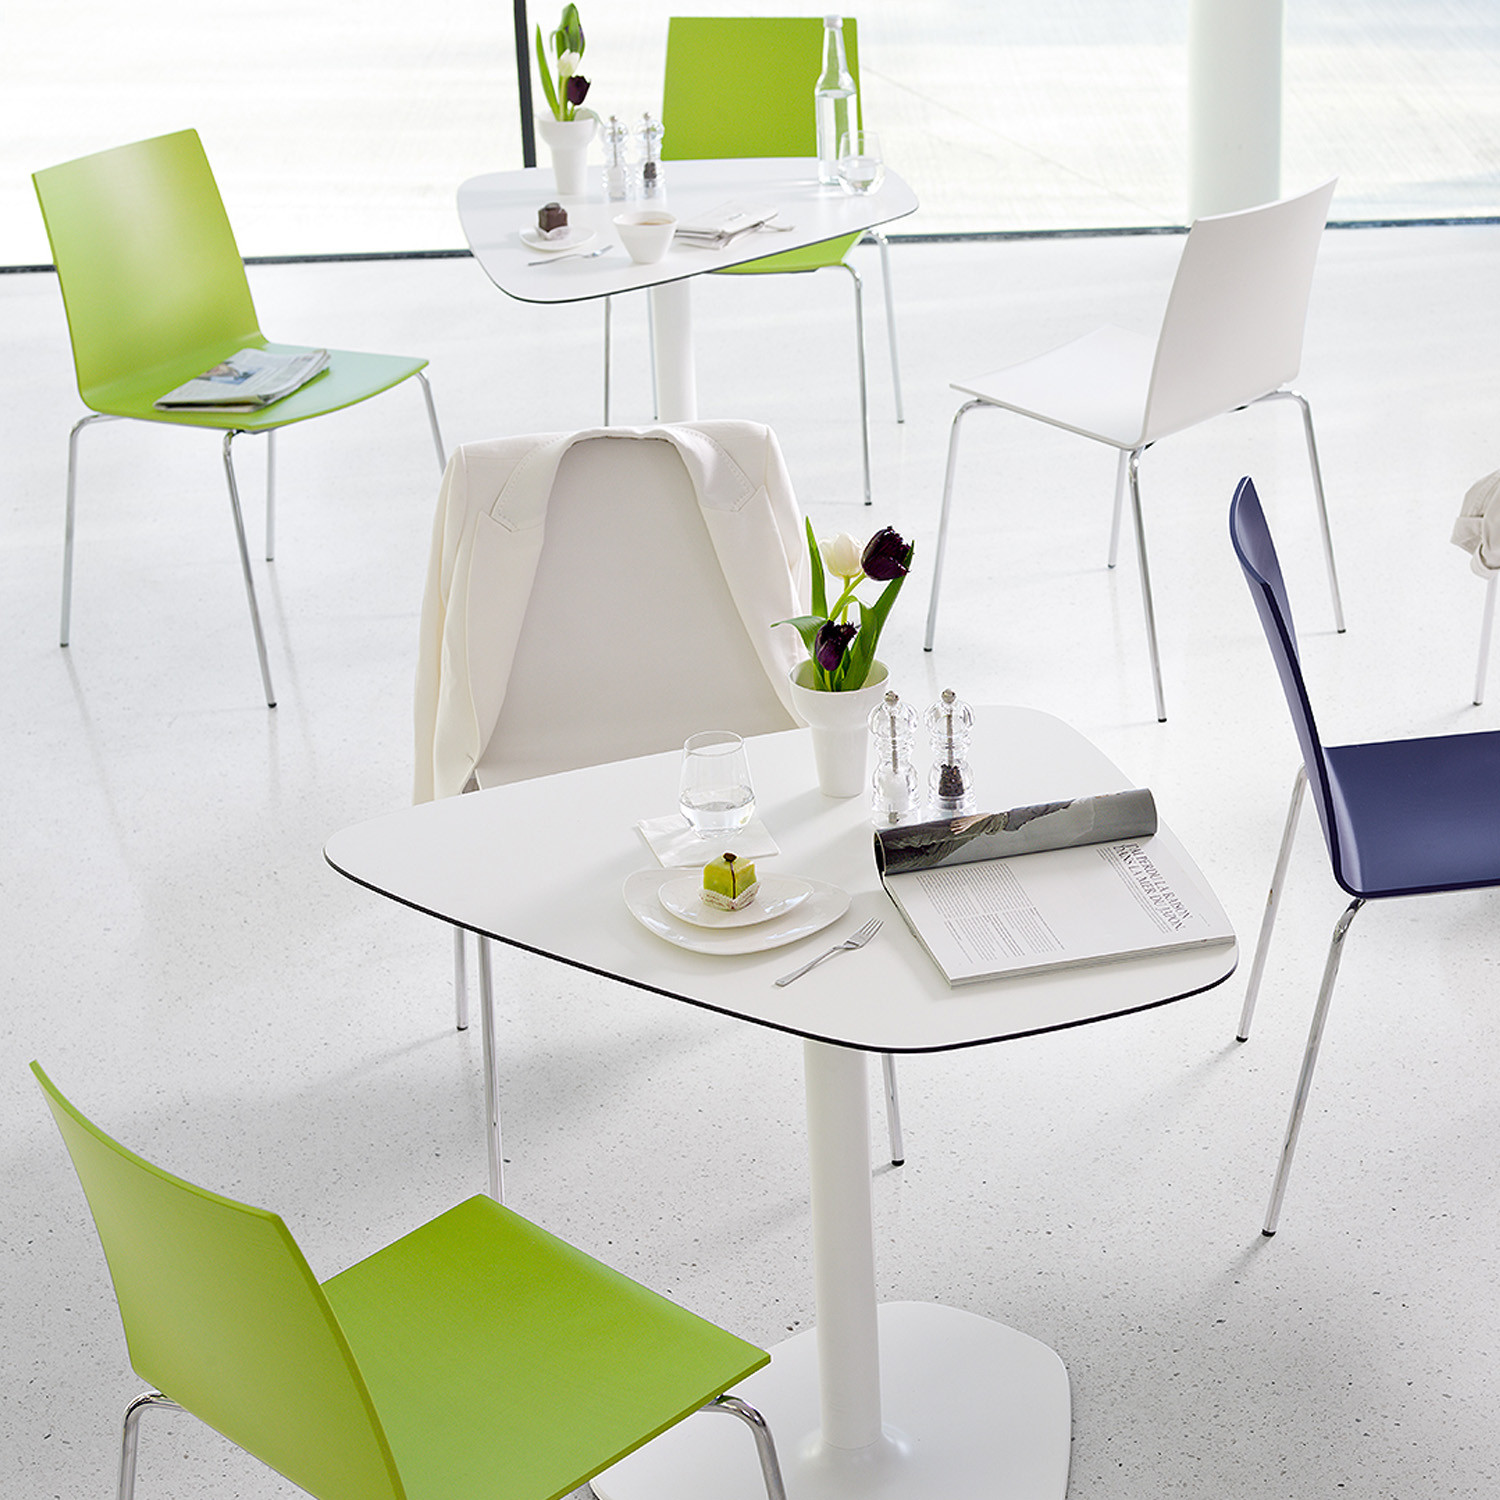 Update Bistro Chair by Wiesner Hager